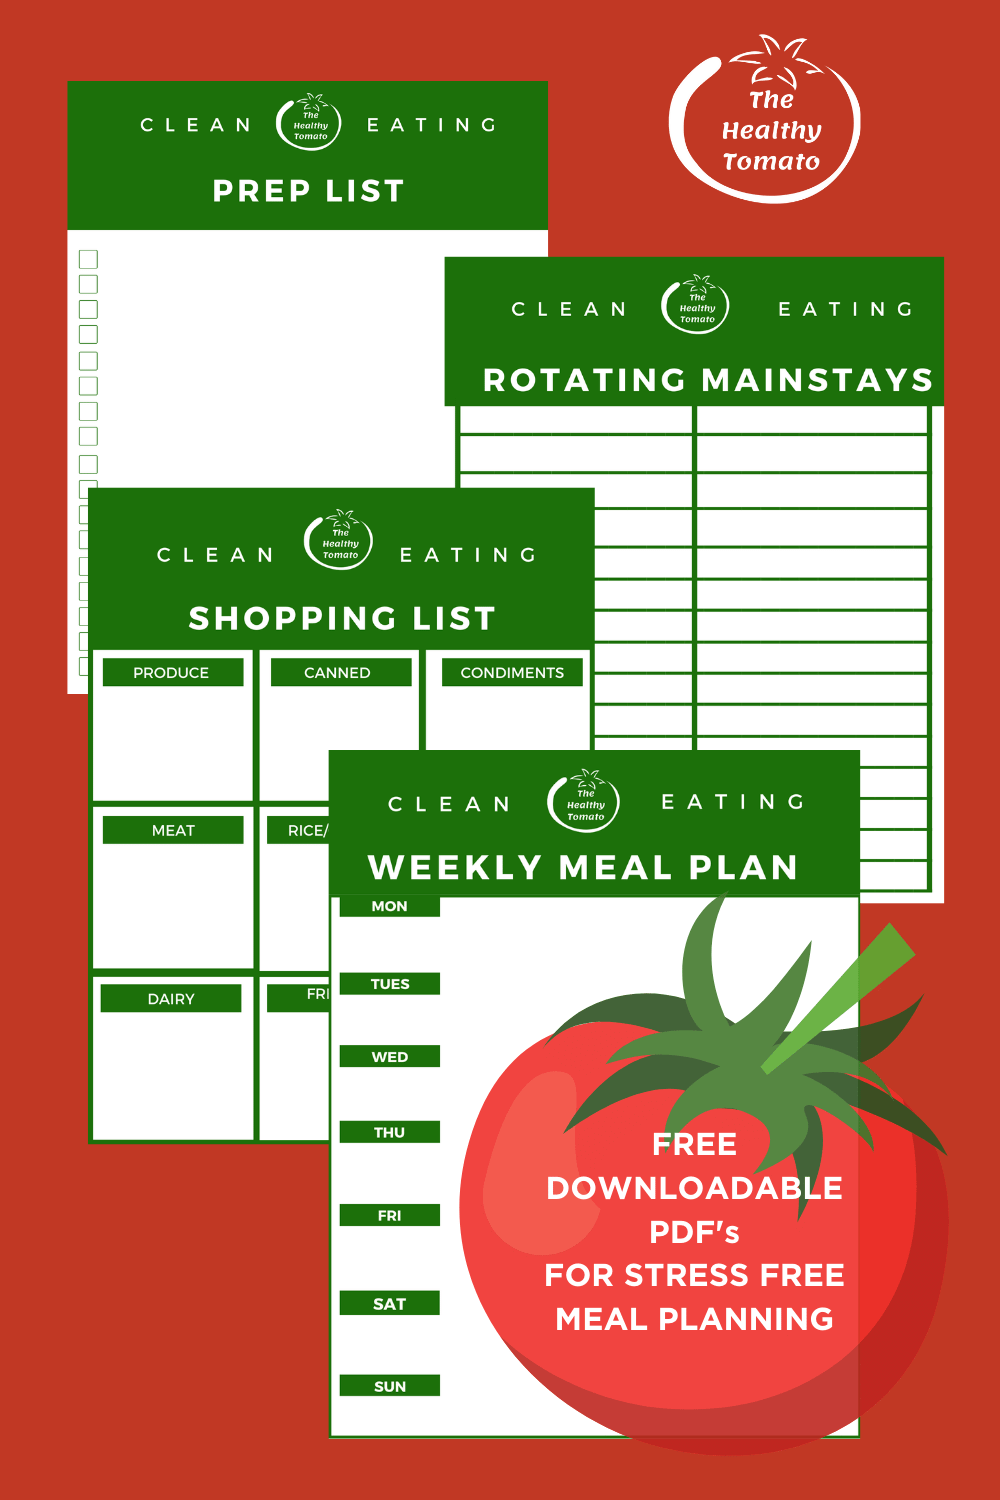 Foundational Principles of Meal Planning